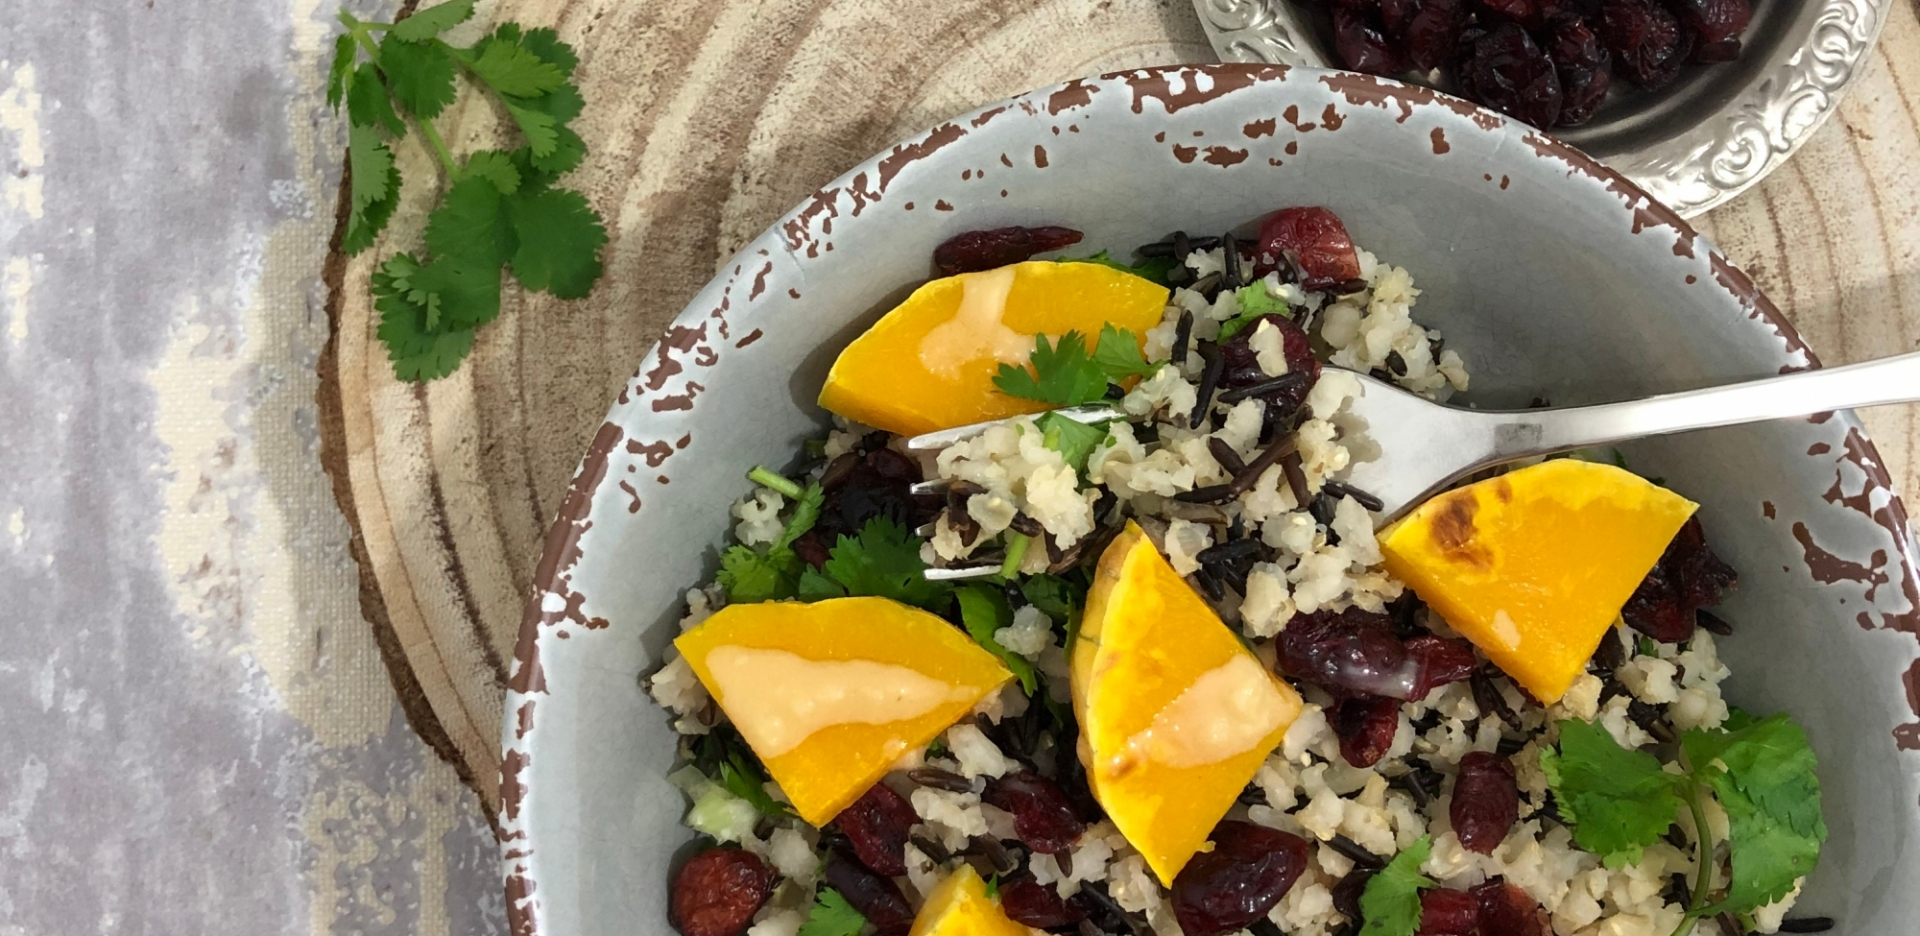 Black and White Rice, Butternut Squash Salad